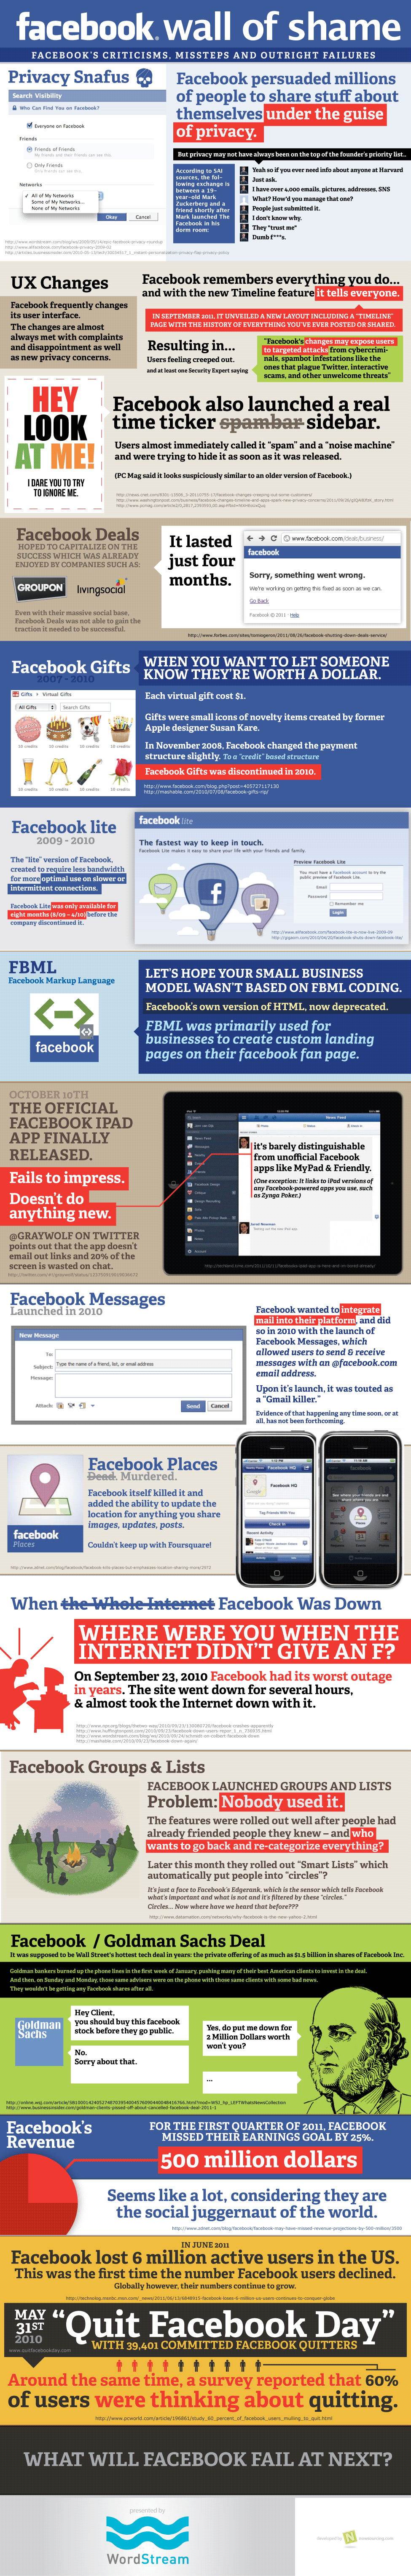 Facebook Failures [ infographic ]